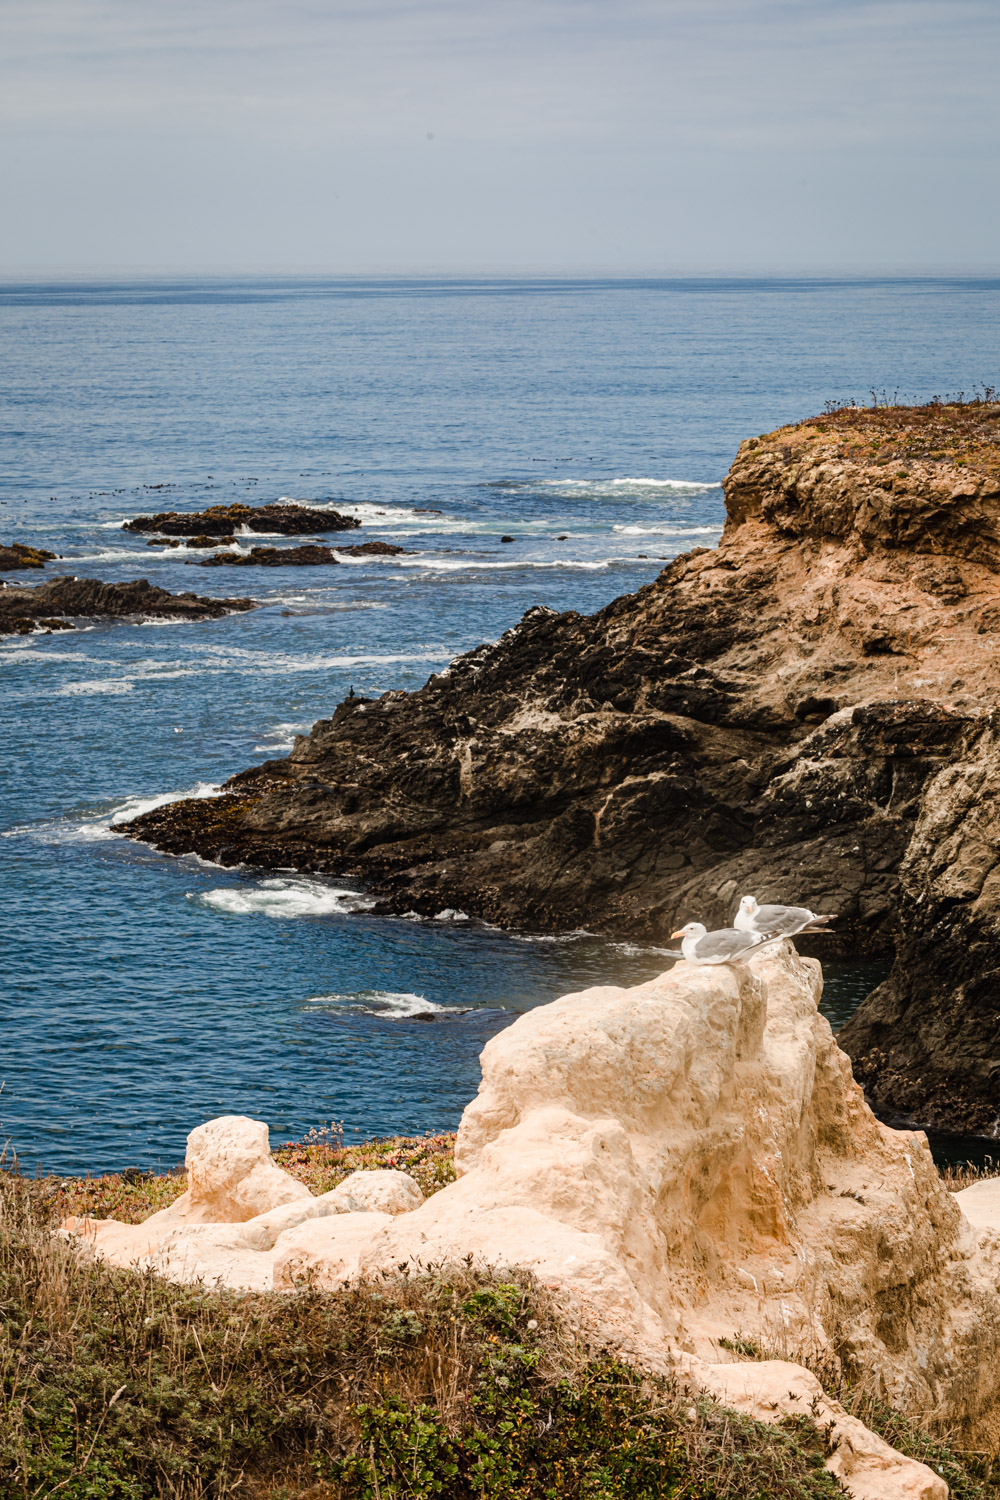 Birds parched on the cliffs at Mendocino Headlands State Park.